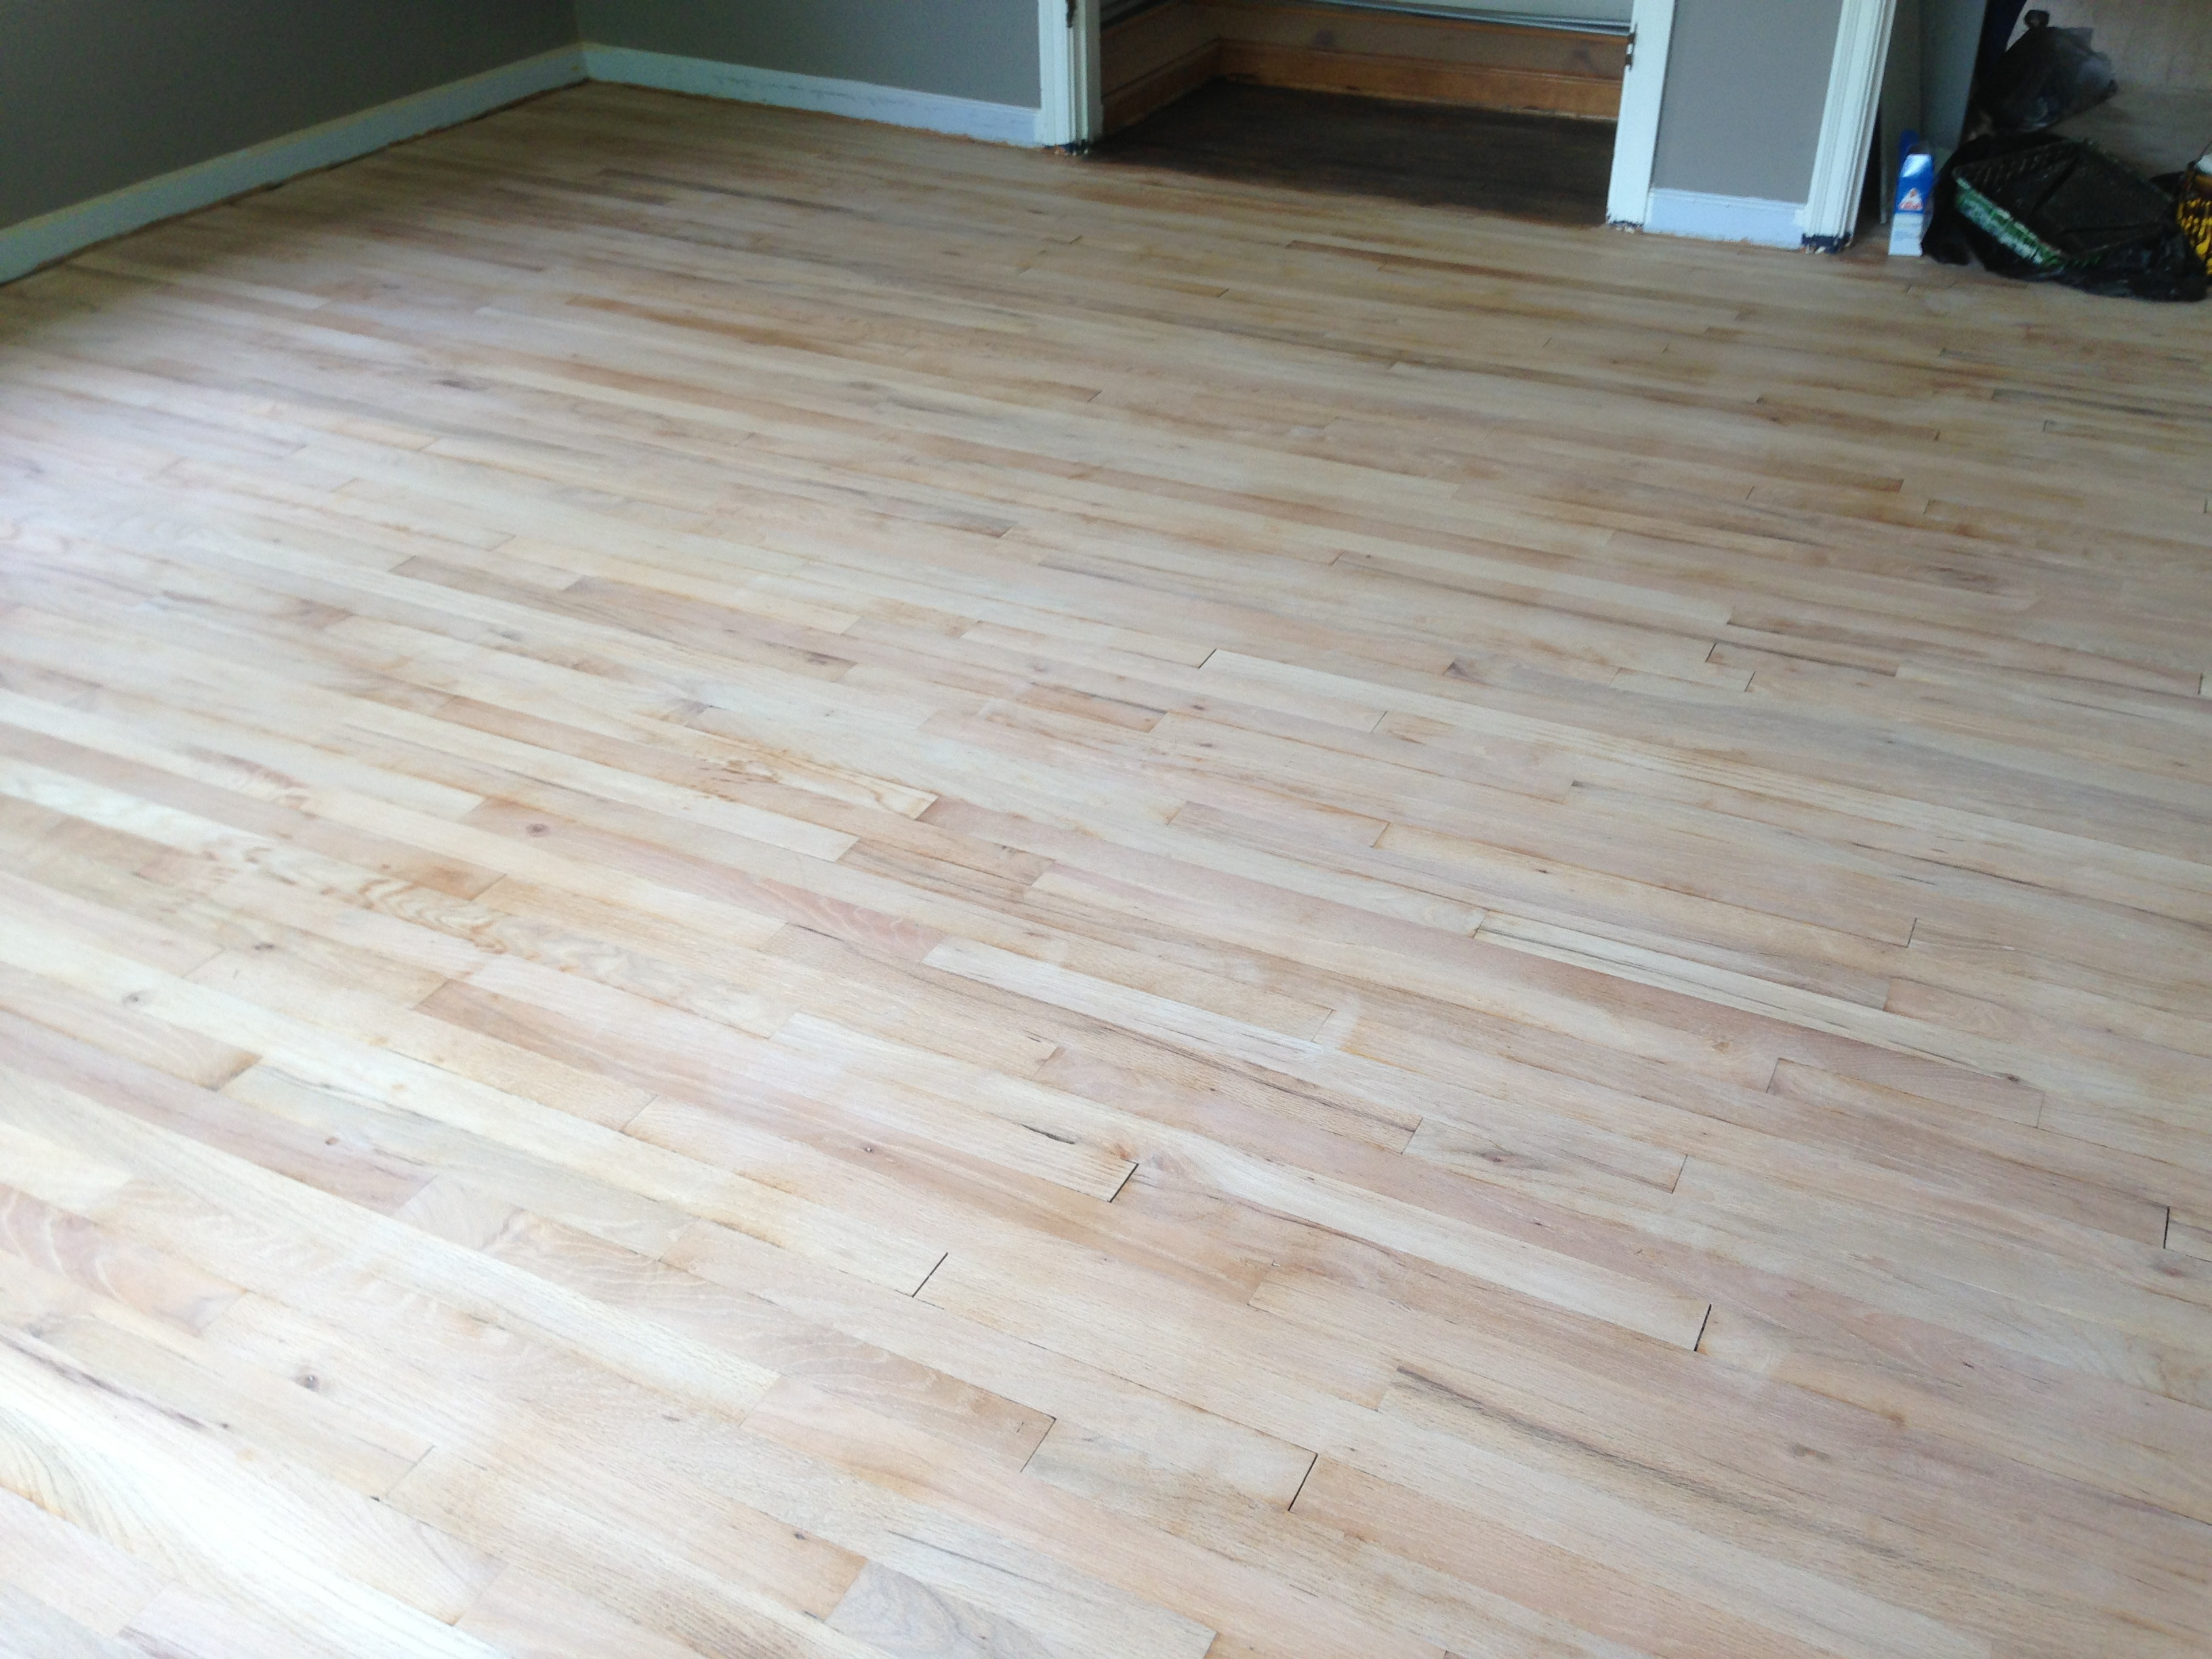 refinishing hardwood floors under carpet of hardwood floors flair within after tediously sanding the floors we were ready for the next step of staining and sealing the floors here is a picture of the floors pre staining